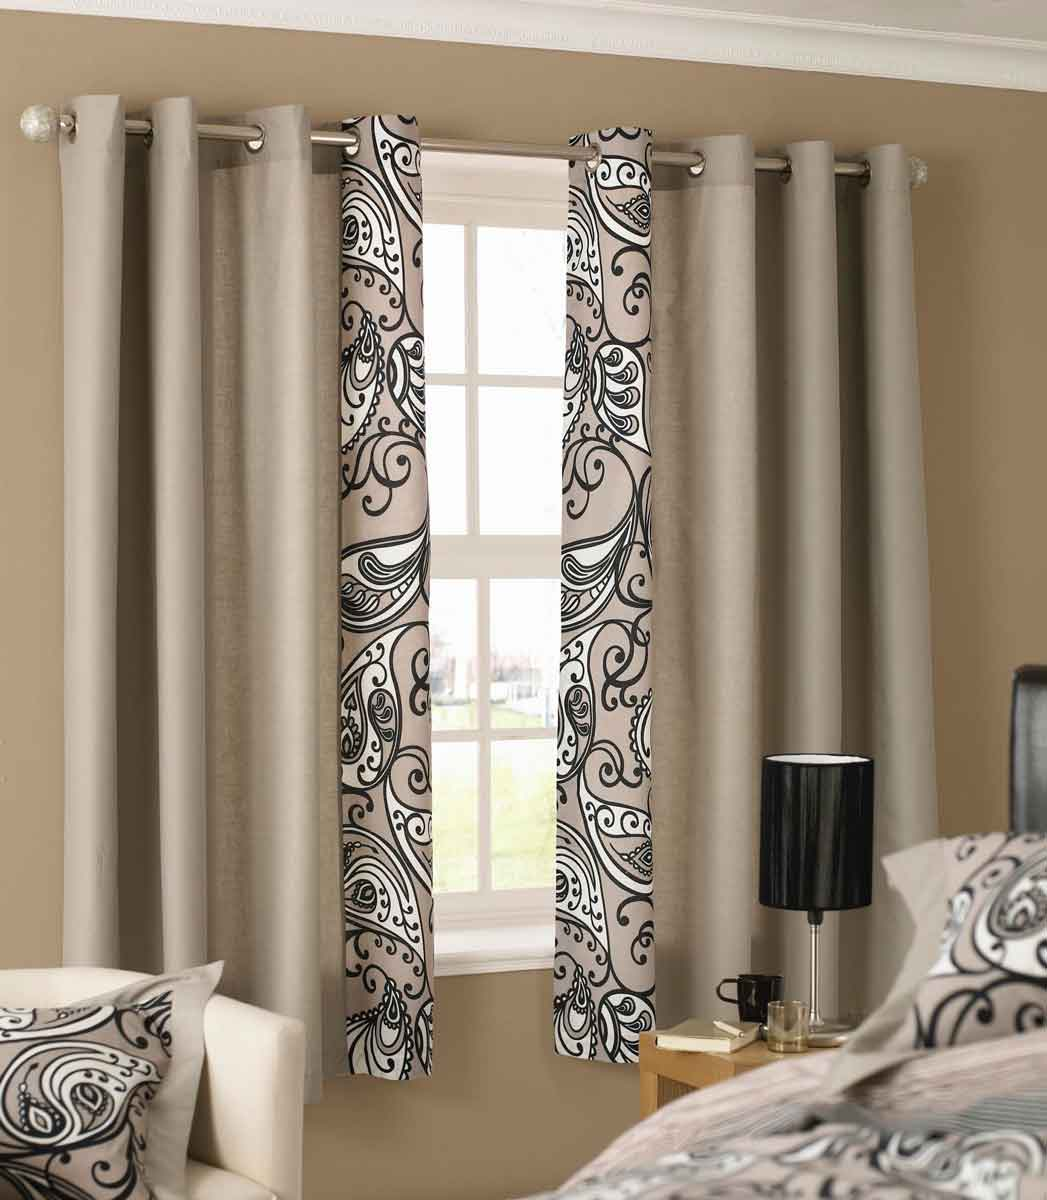 image small bathroom window curtain ideas beautiful